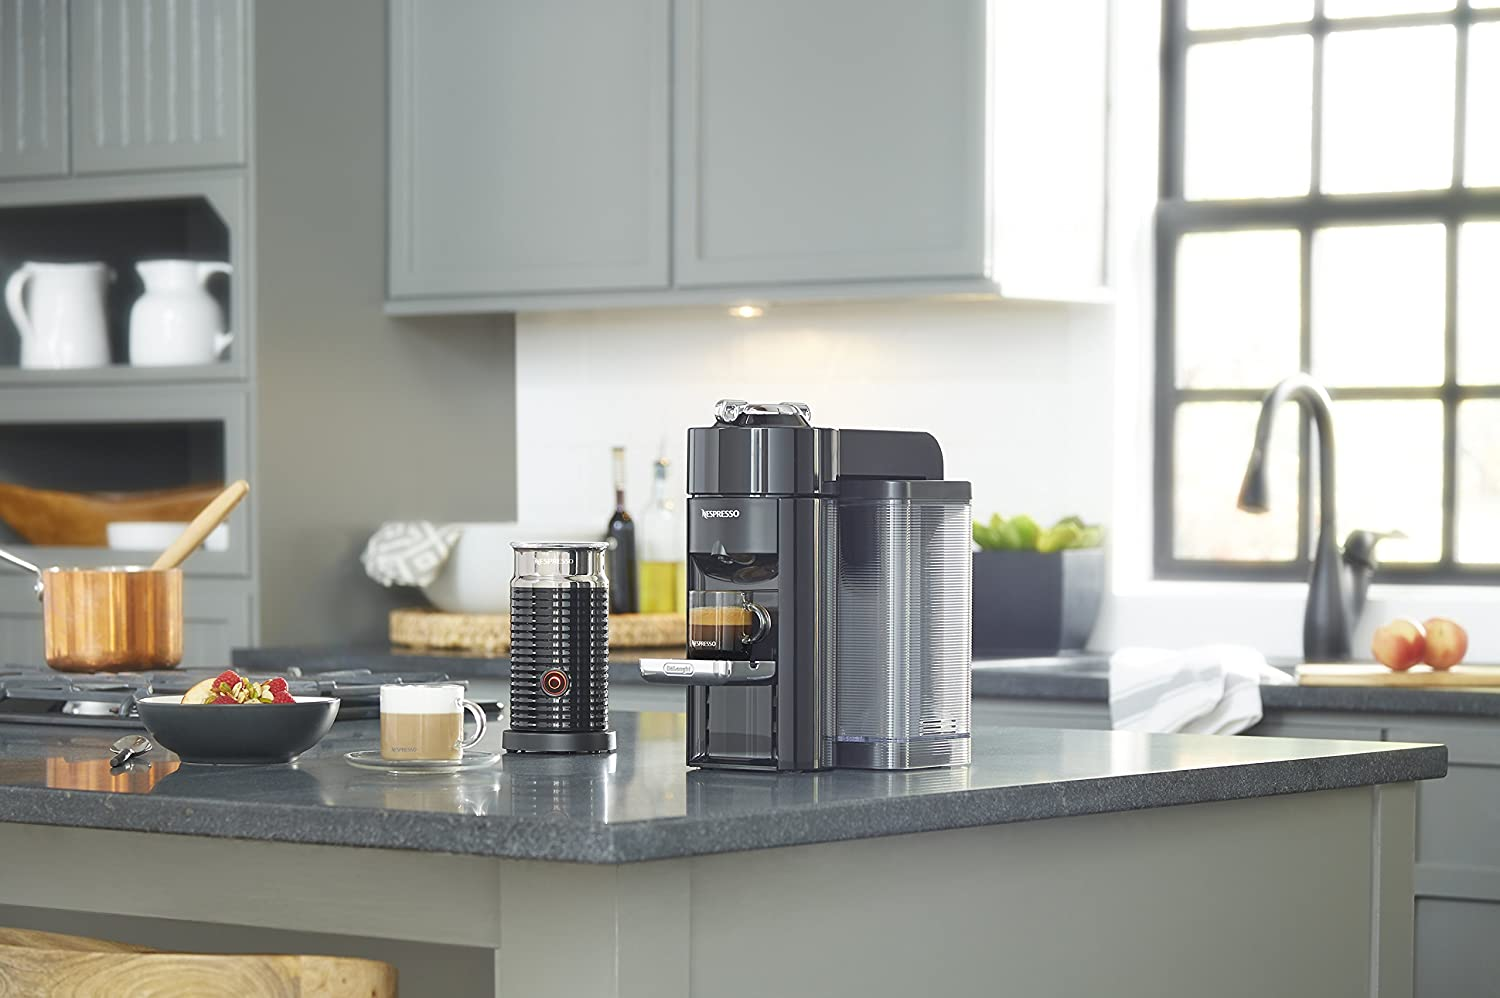 Best Espresso and Coffee Maker in 2020: Reviews & Buying Guide 3